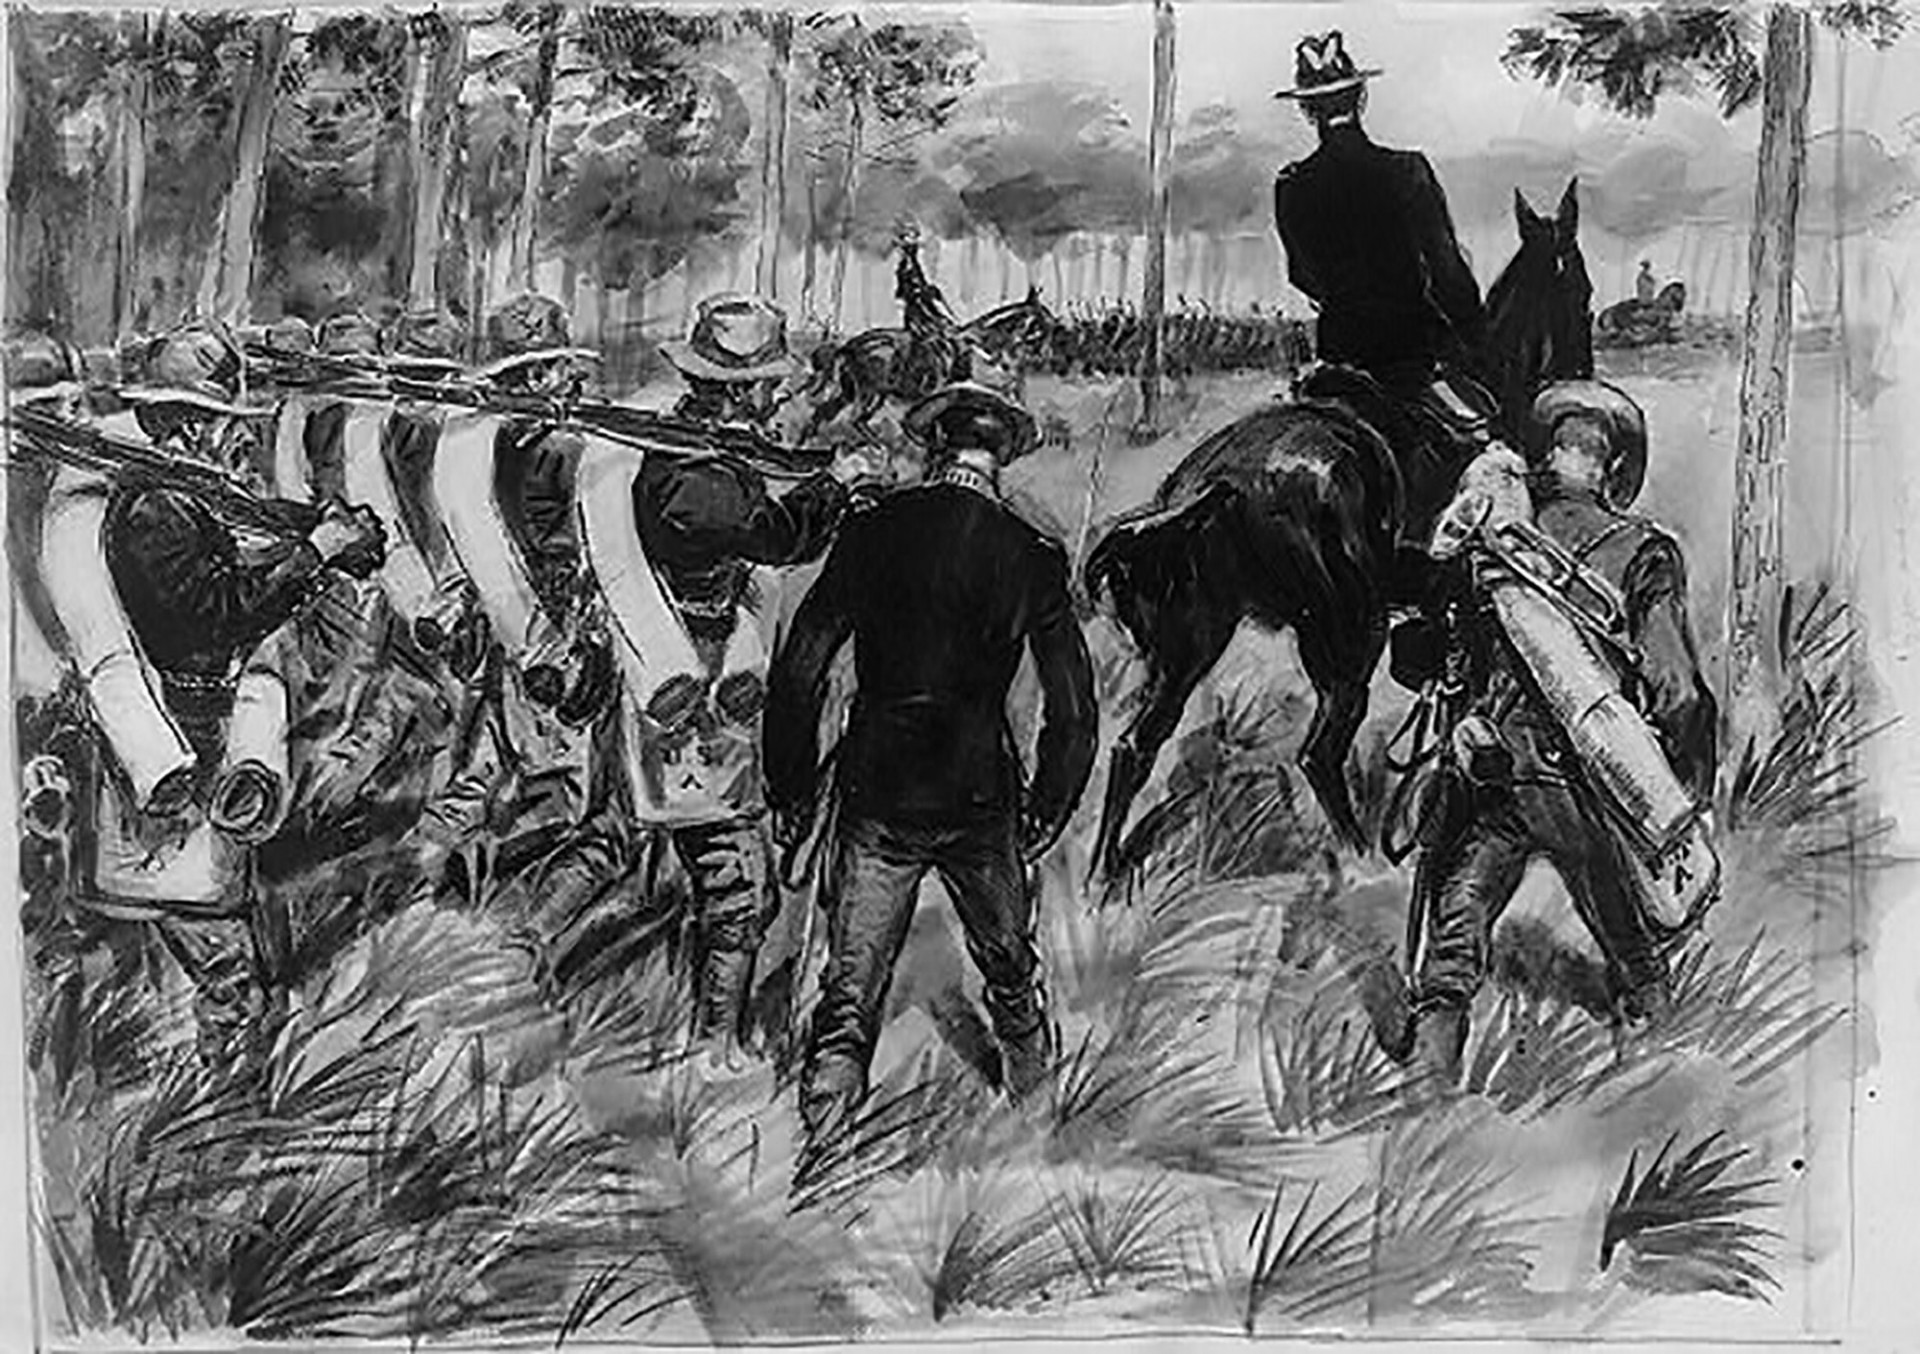 019 Essay Example Macarthur Spanish American War Troops On The March Contributor Glackens William J Loc 2000x1411 Q85 Crop Subsampling 2 Upscale Awful Causes And Effects Topics Questions 1920